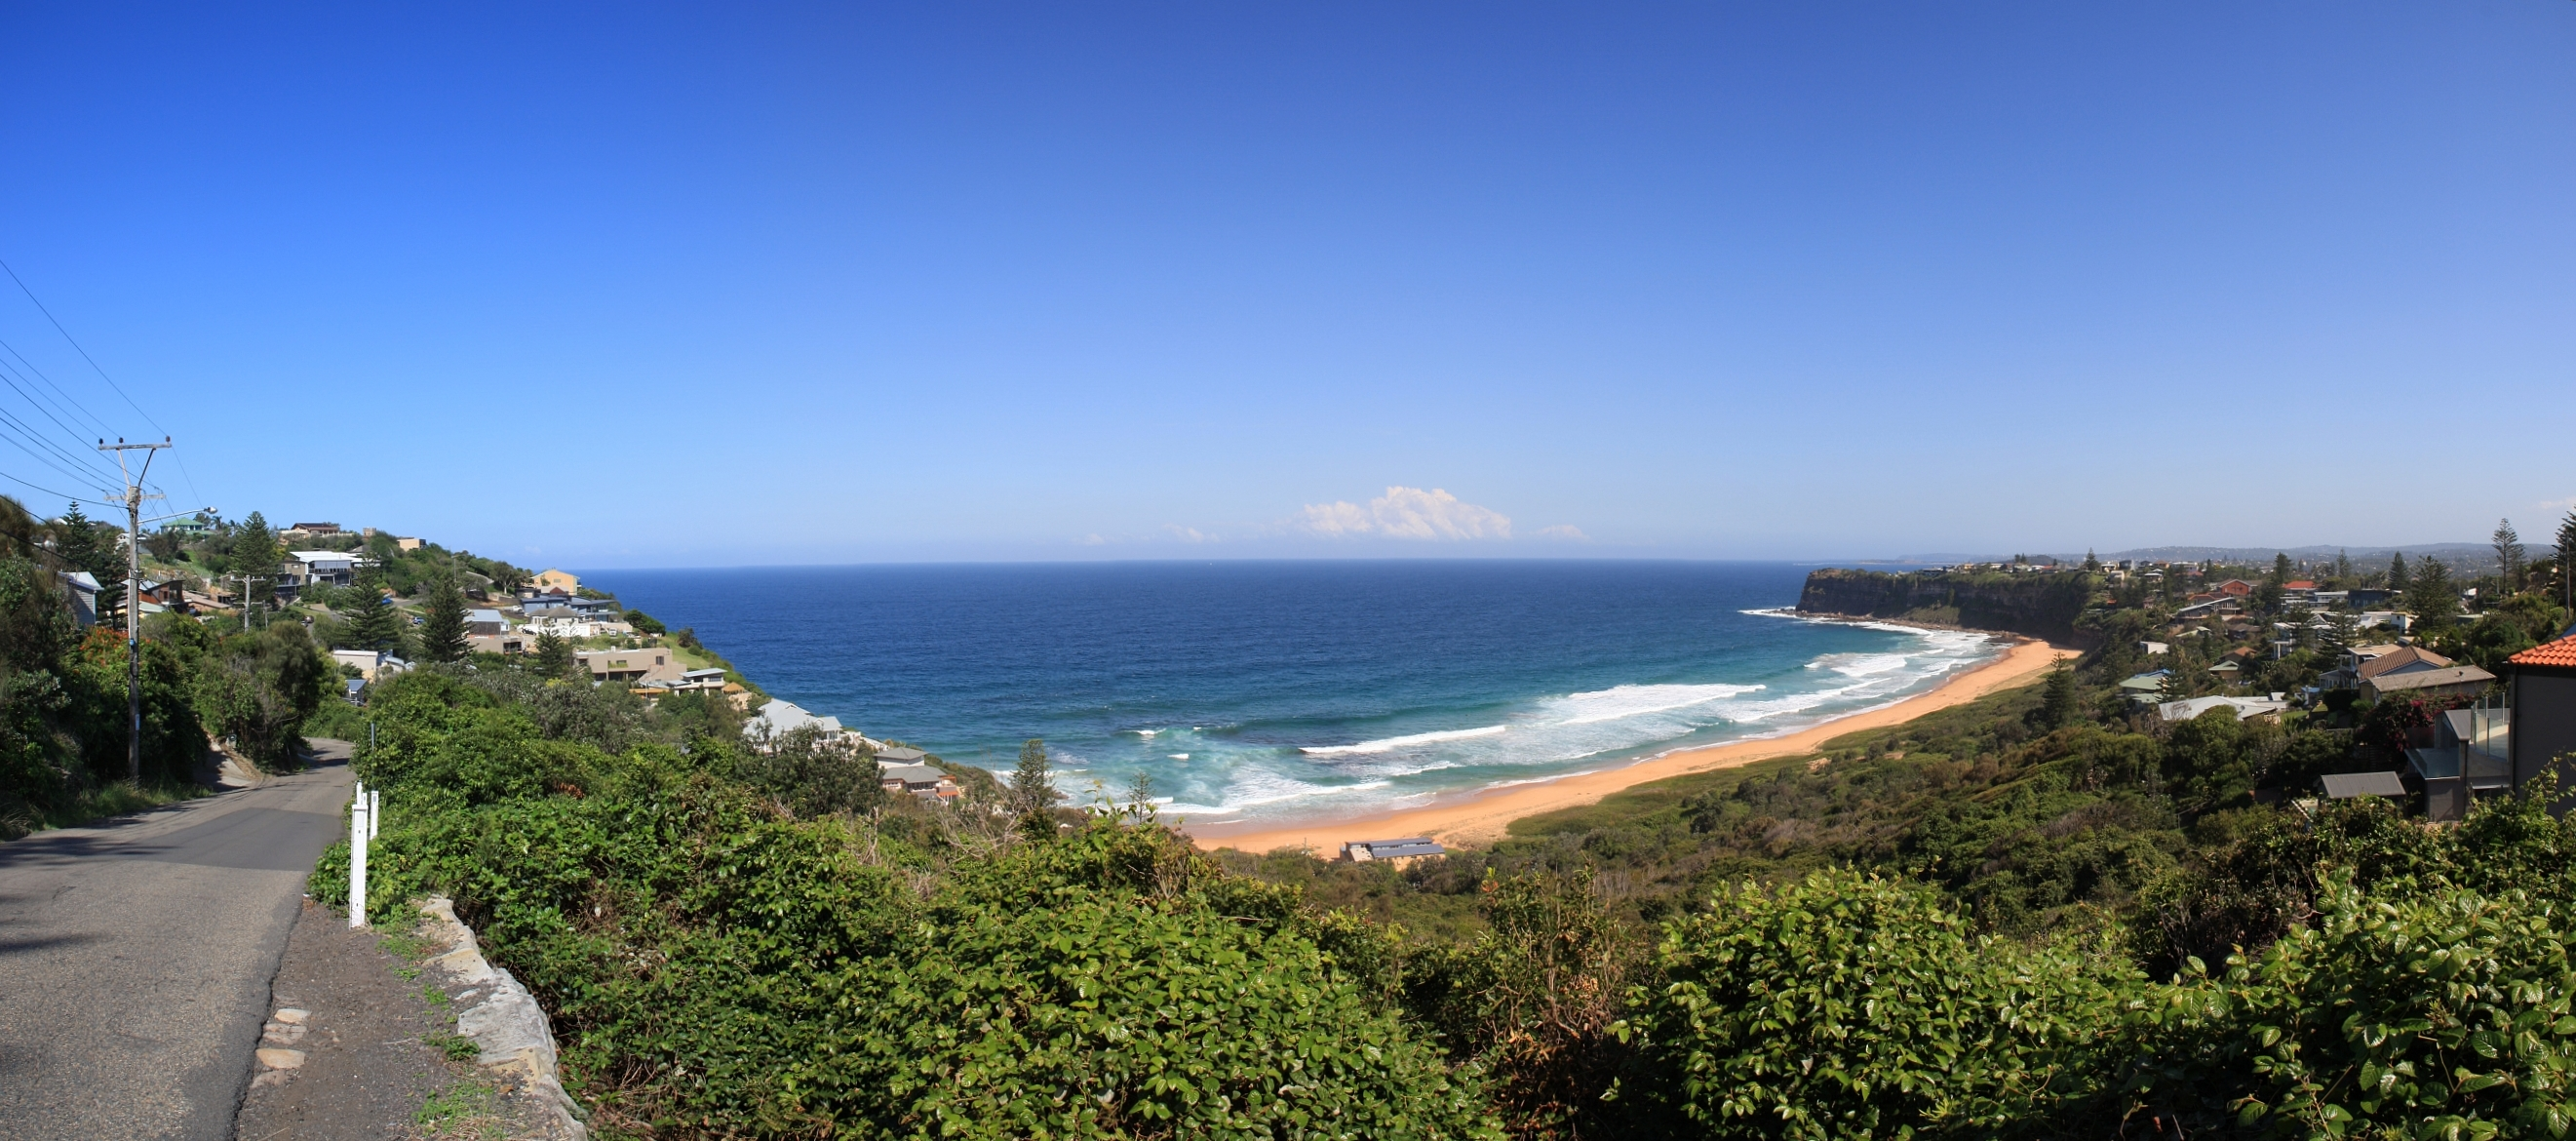 Northern beaches of sydney